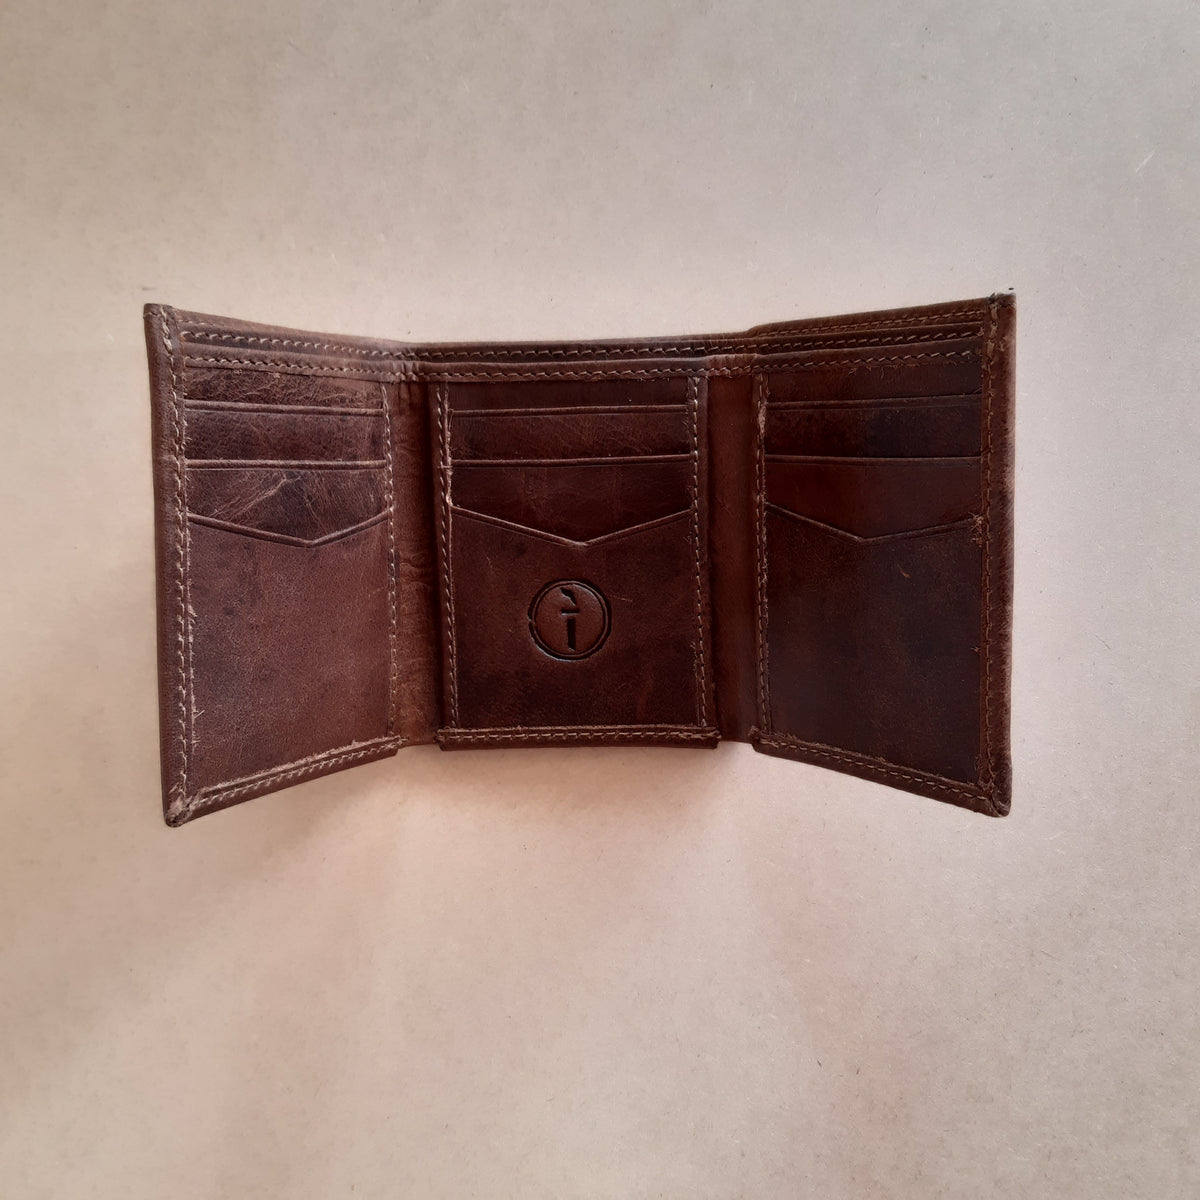 Men's Leather Trifold Wallet - Crazy Horse Tan